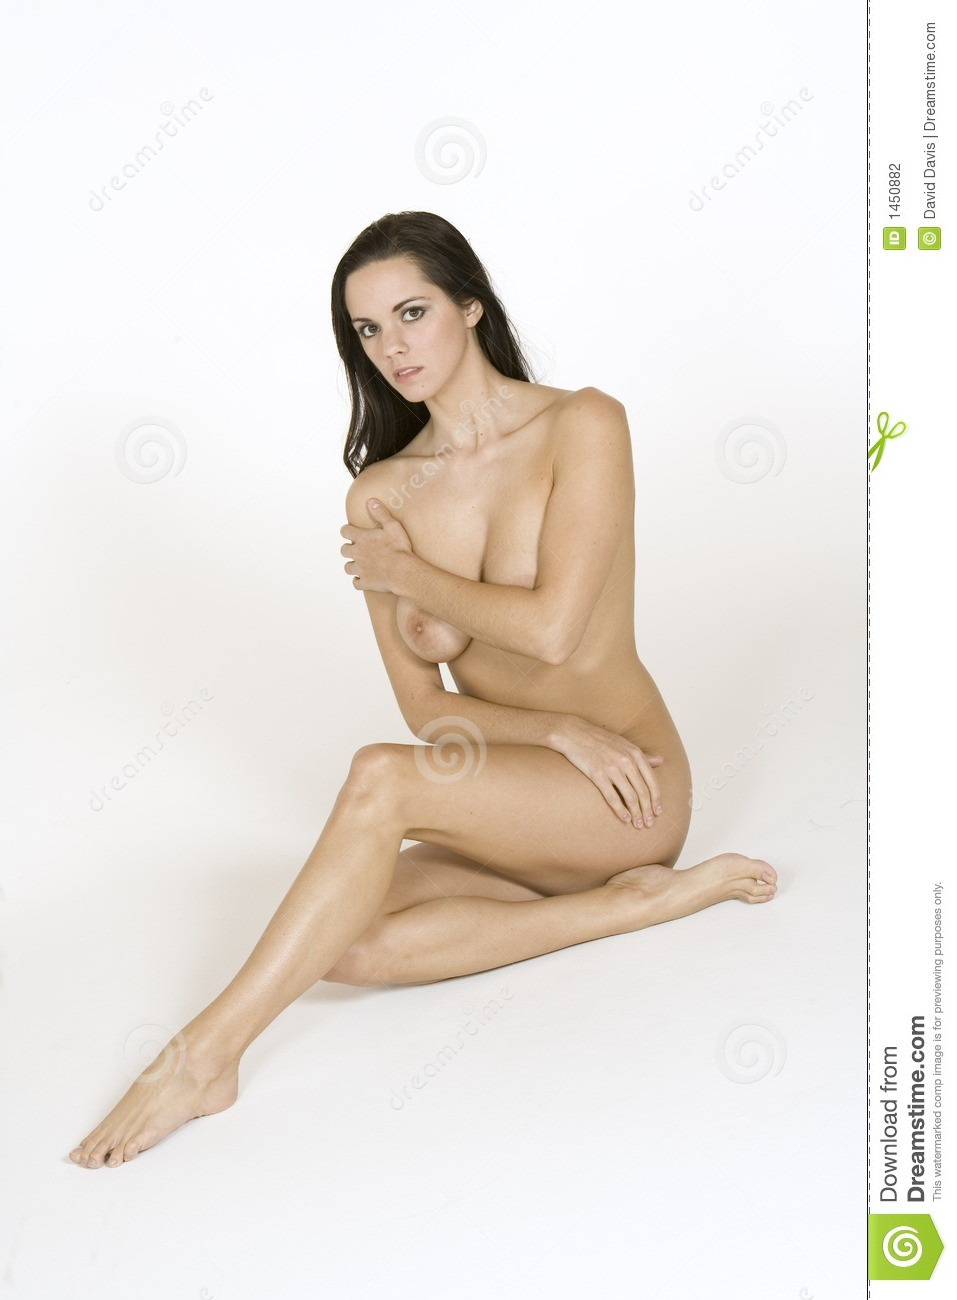 Female Figure Study Photography Posters  Redbubble